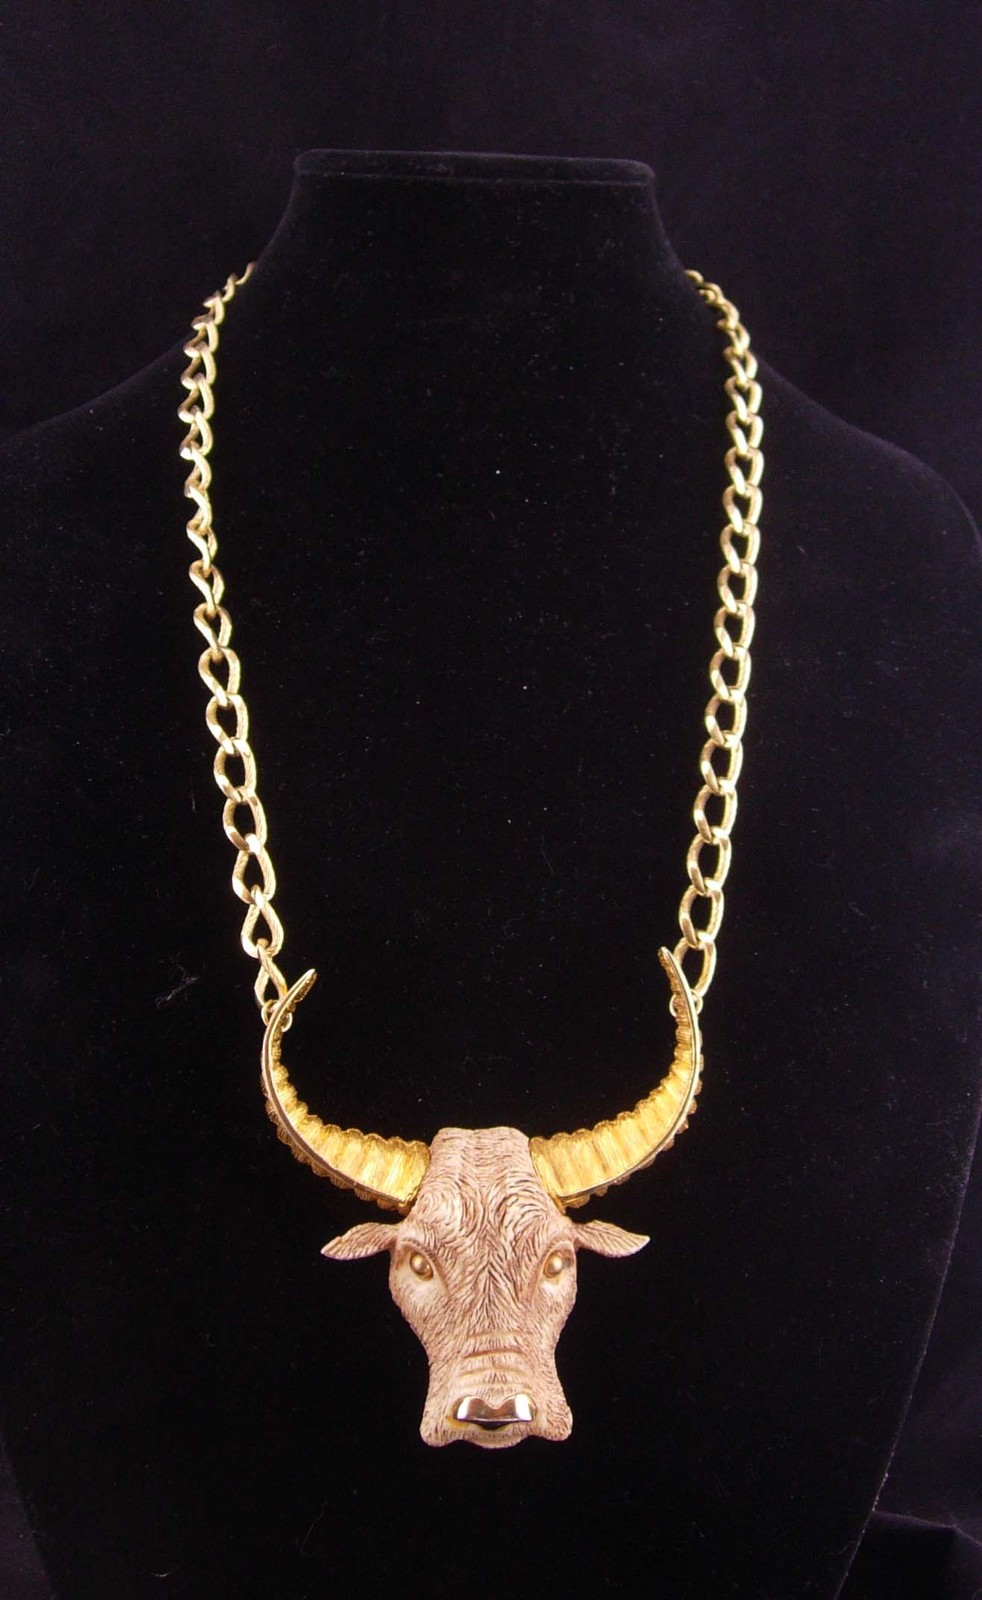 Razza Texas Bull Necklace / Vintage Western Cowboy necklace / Rancher / Birthday